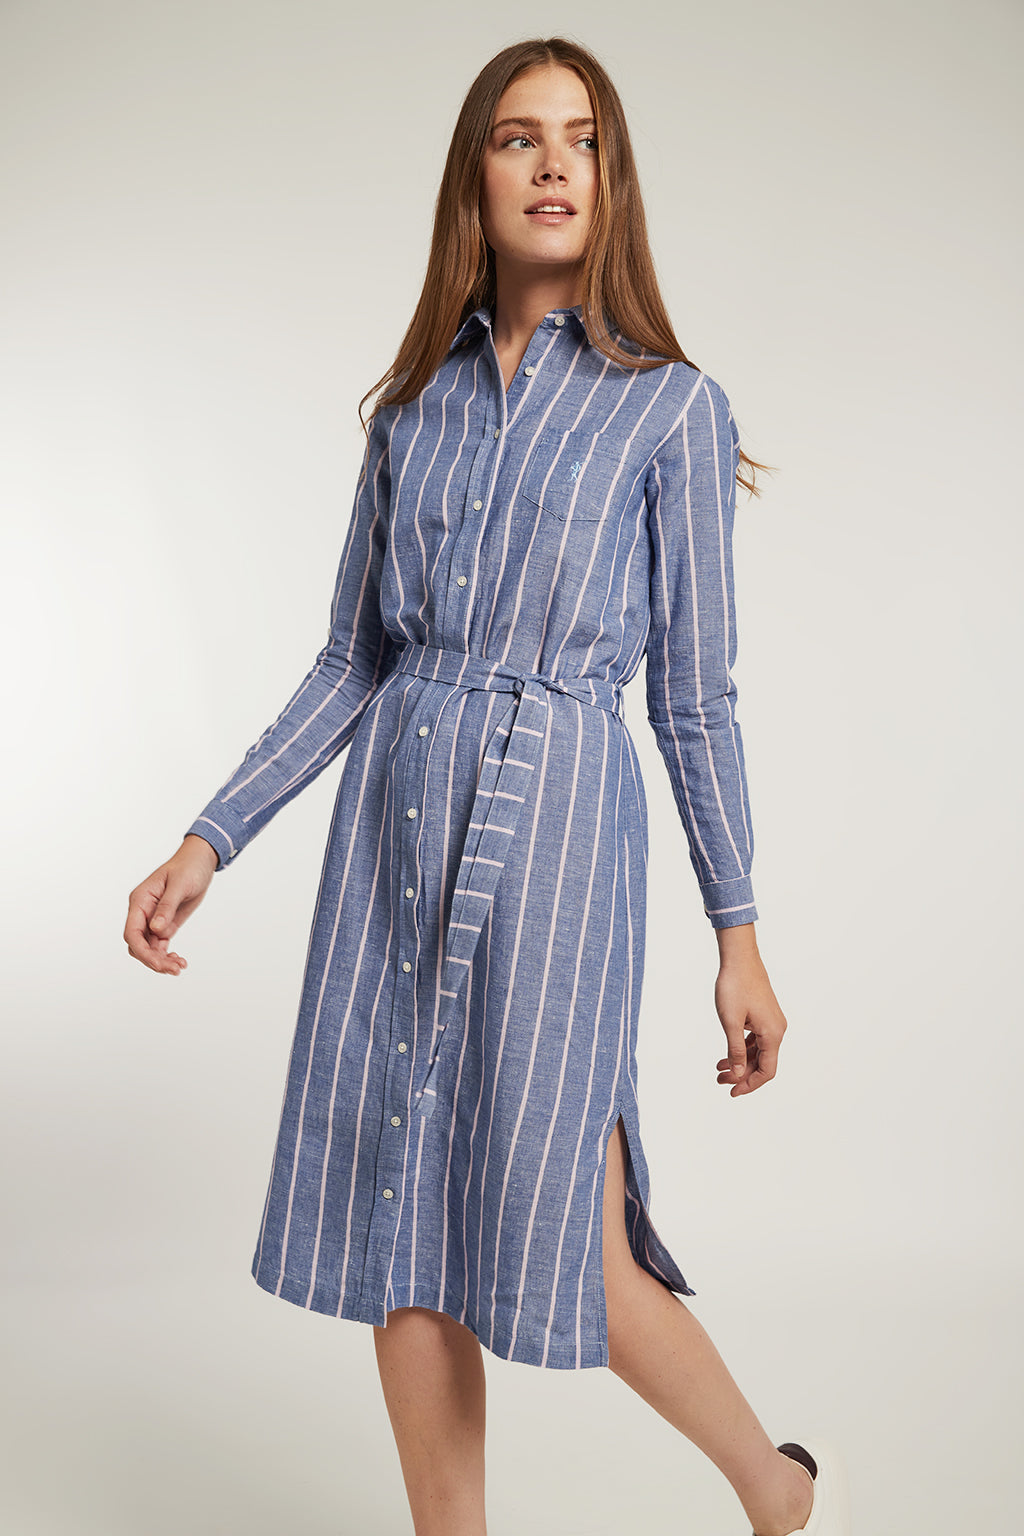 Blue linen and cotton dress with violet stripes